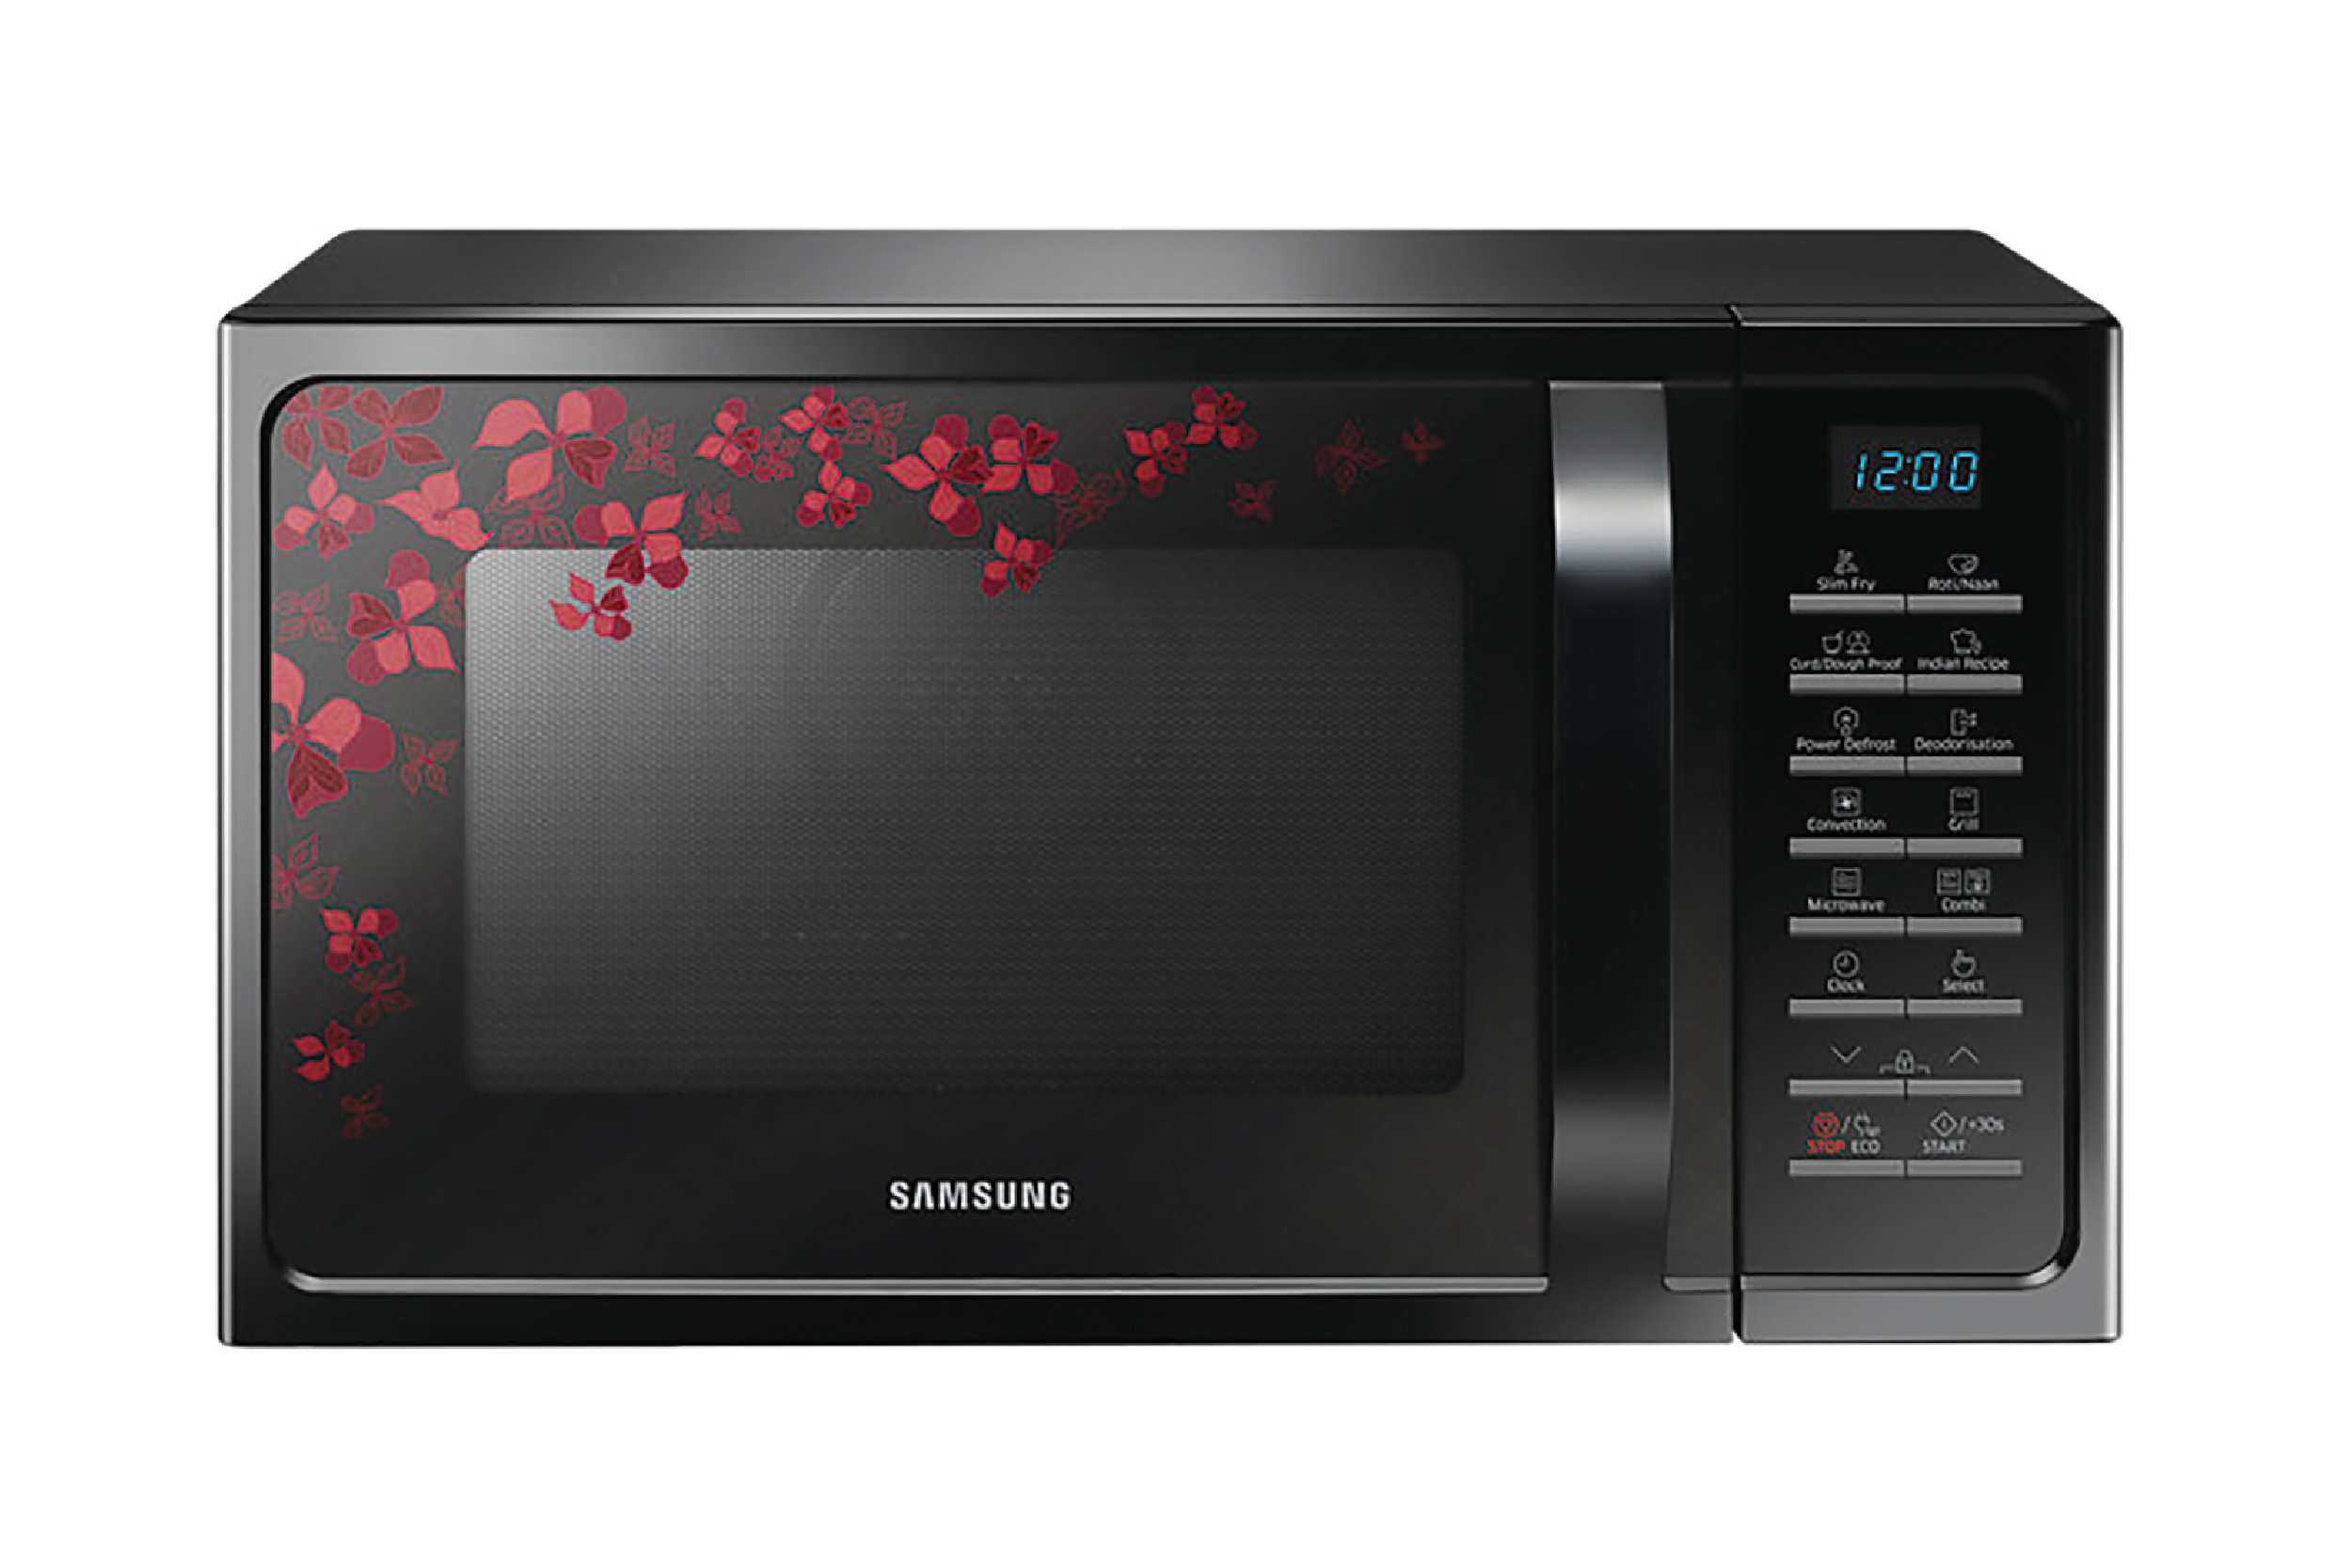 Samsung 28 LTR MC28H5025VB Convection Microwave Oven